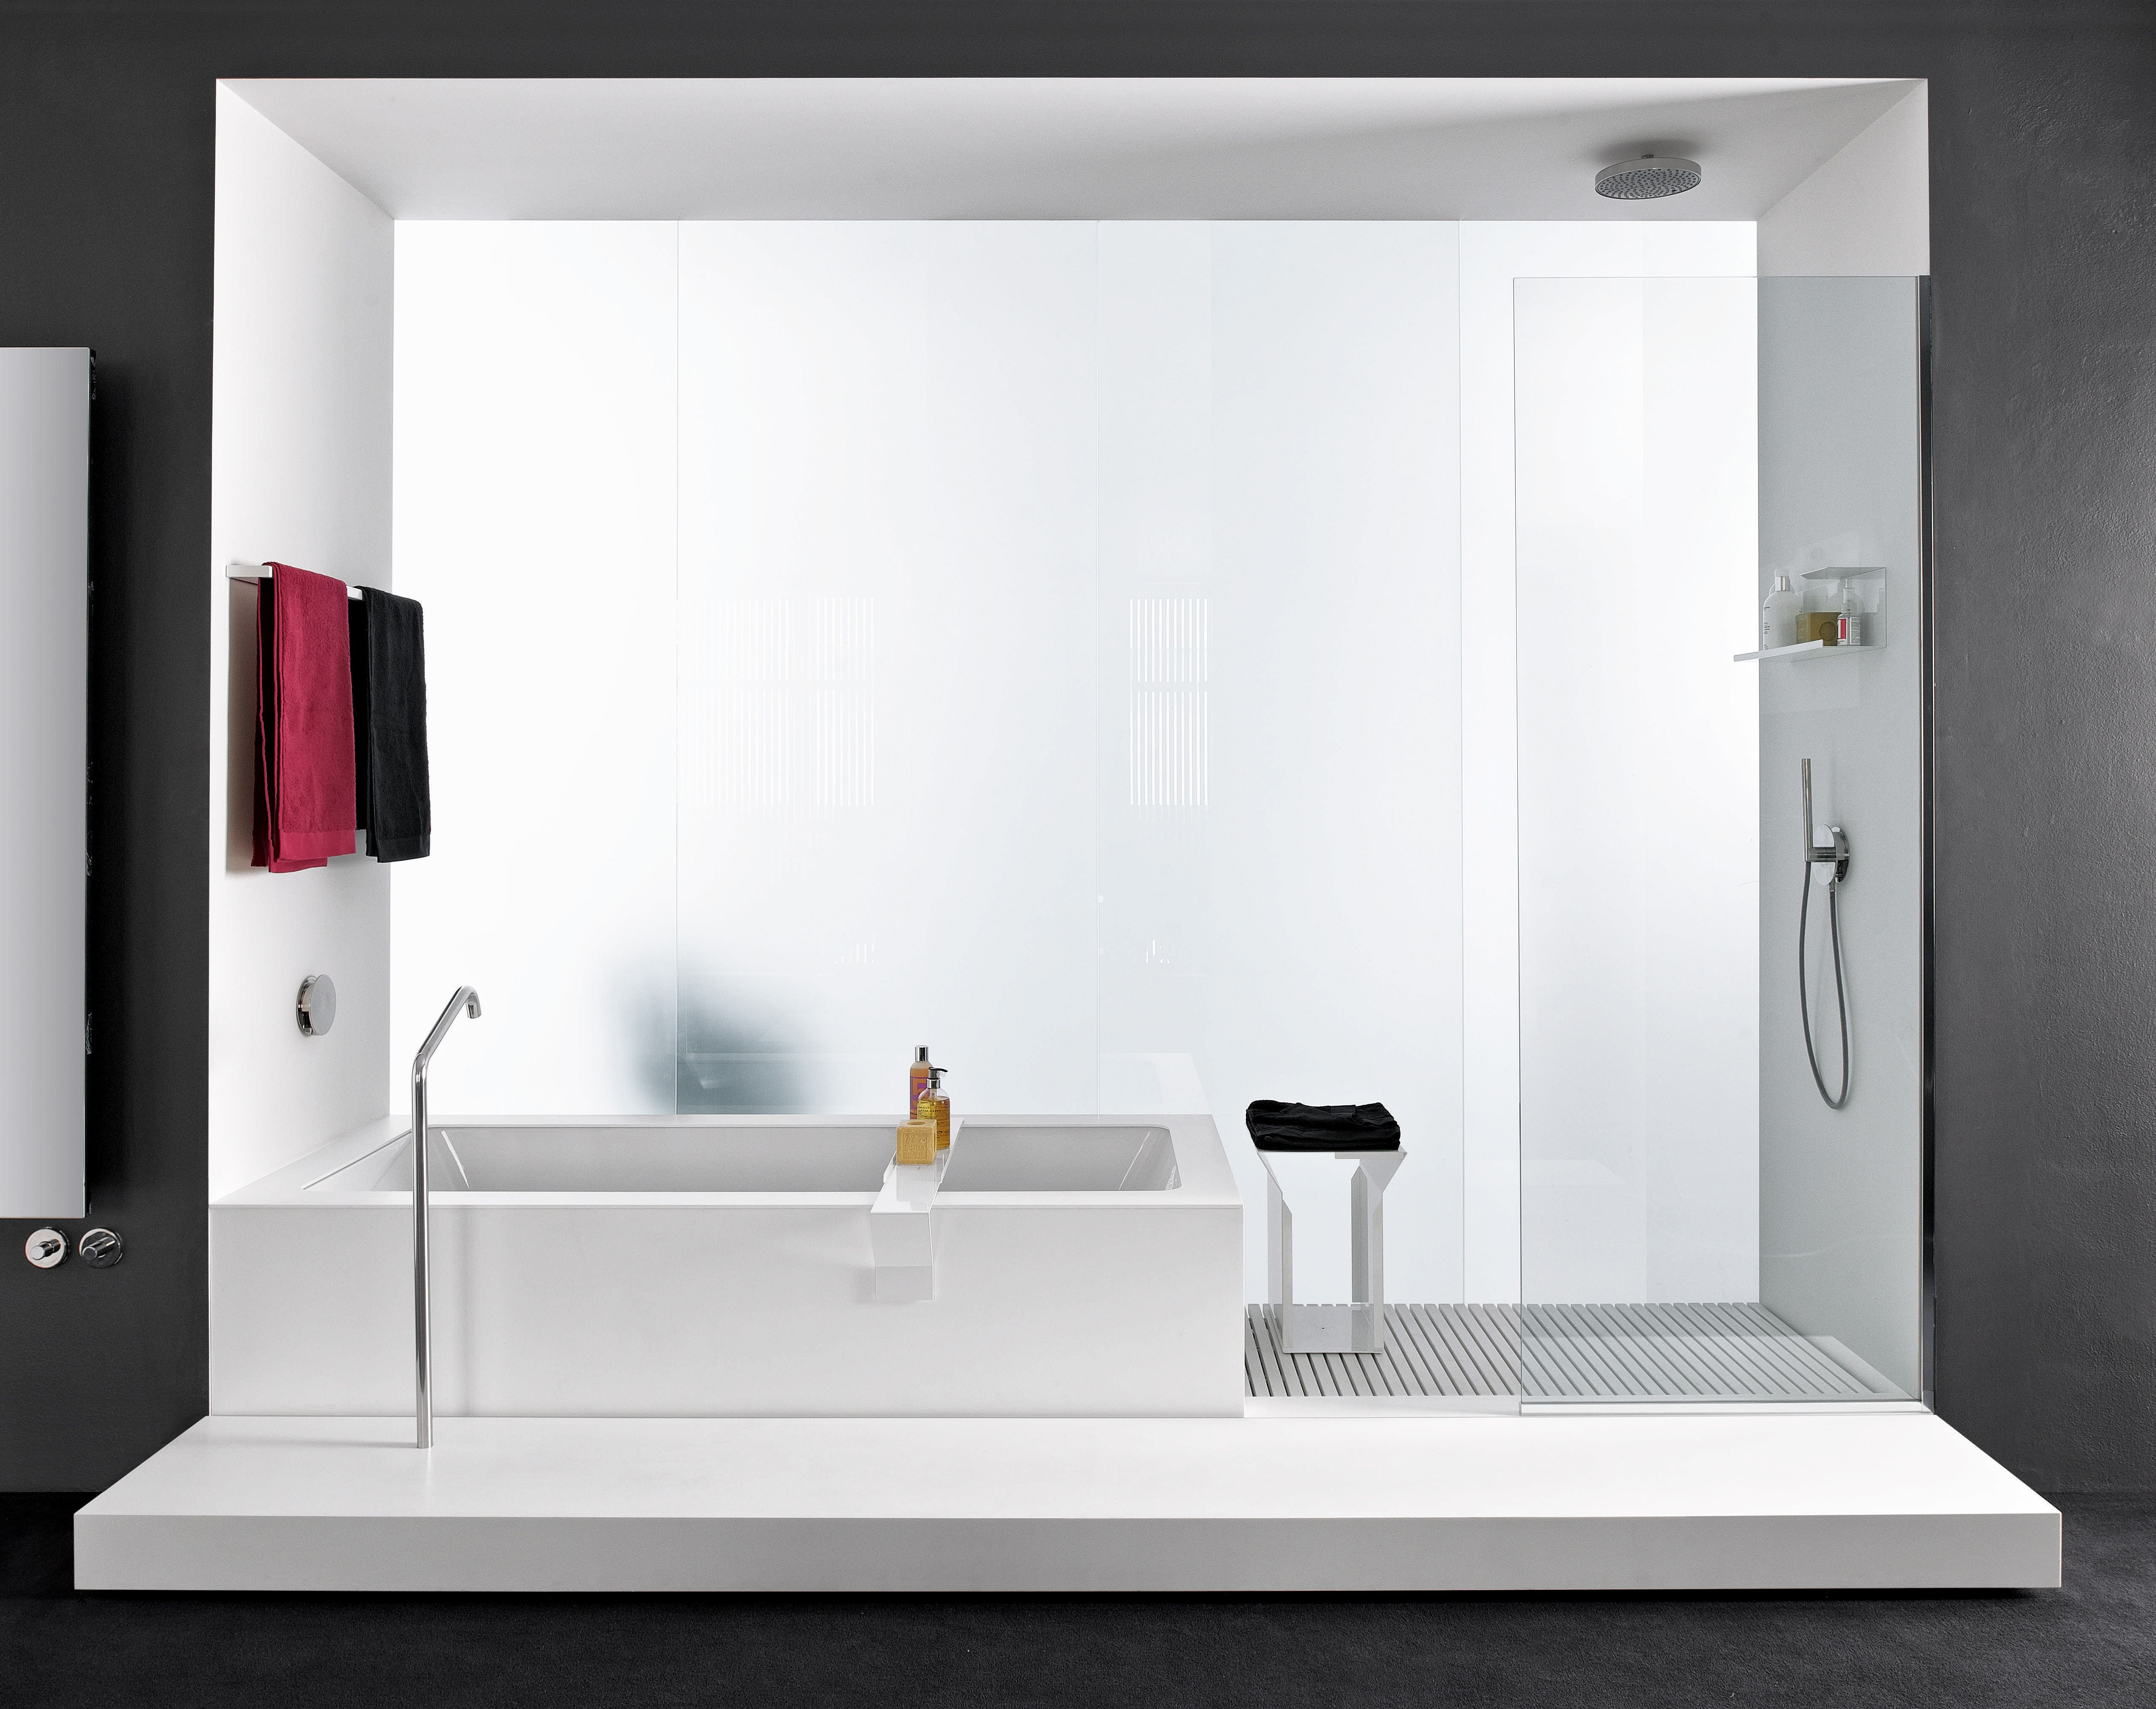 simp with architectural soaker digest tub drop freestanding shower undermount bathroom depot home architecture is egg guide bathtub dropin shaped bathtubs soaking acrylic ideas price lowes what in genoa photos oval free installation